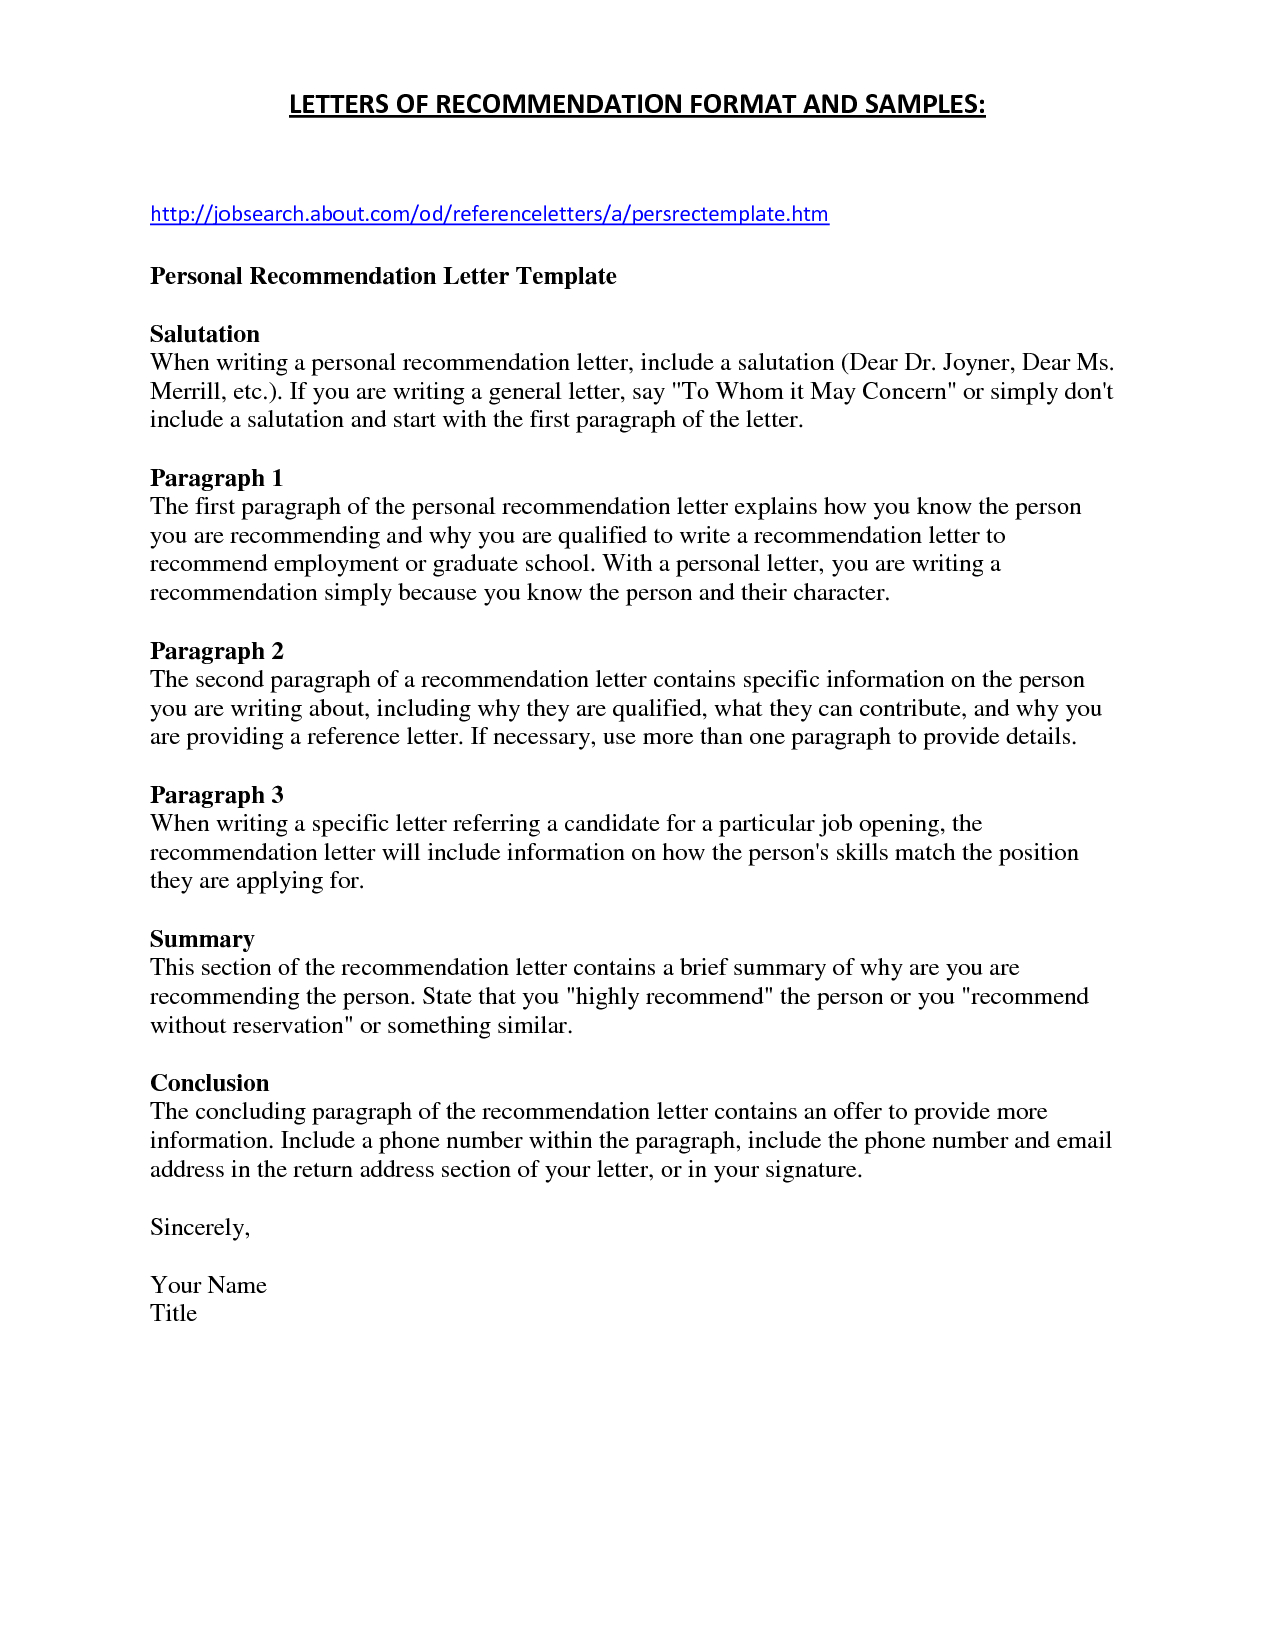 college recommendation letter template example-best photos of letter of re mendation nursing 3-r